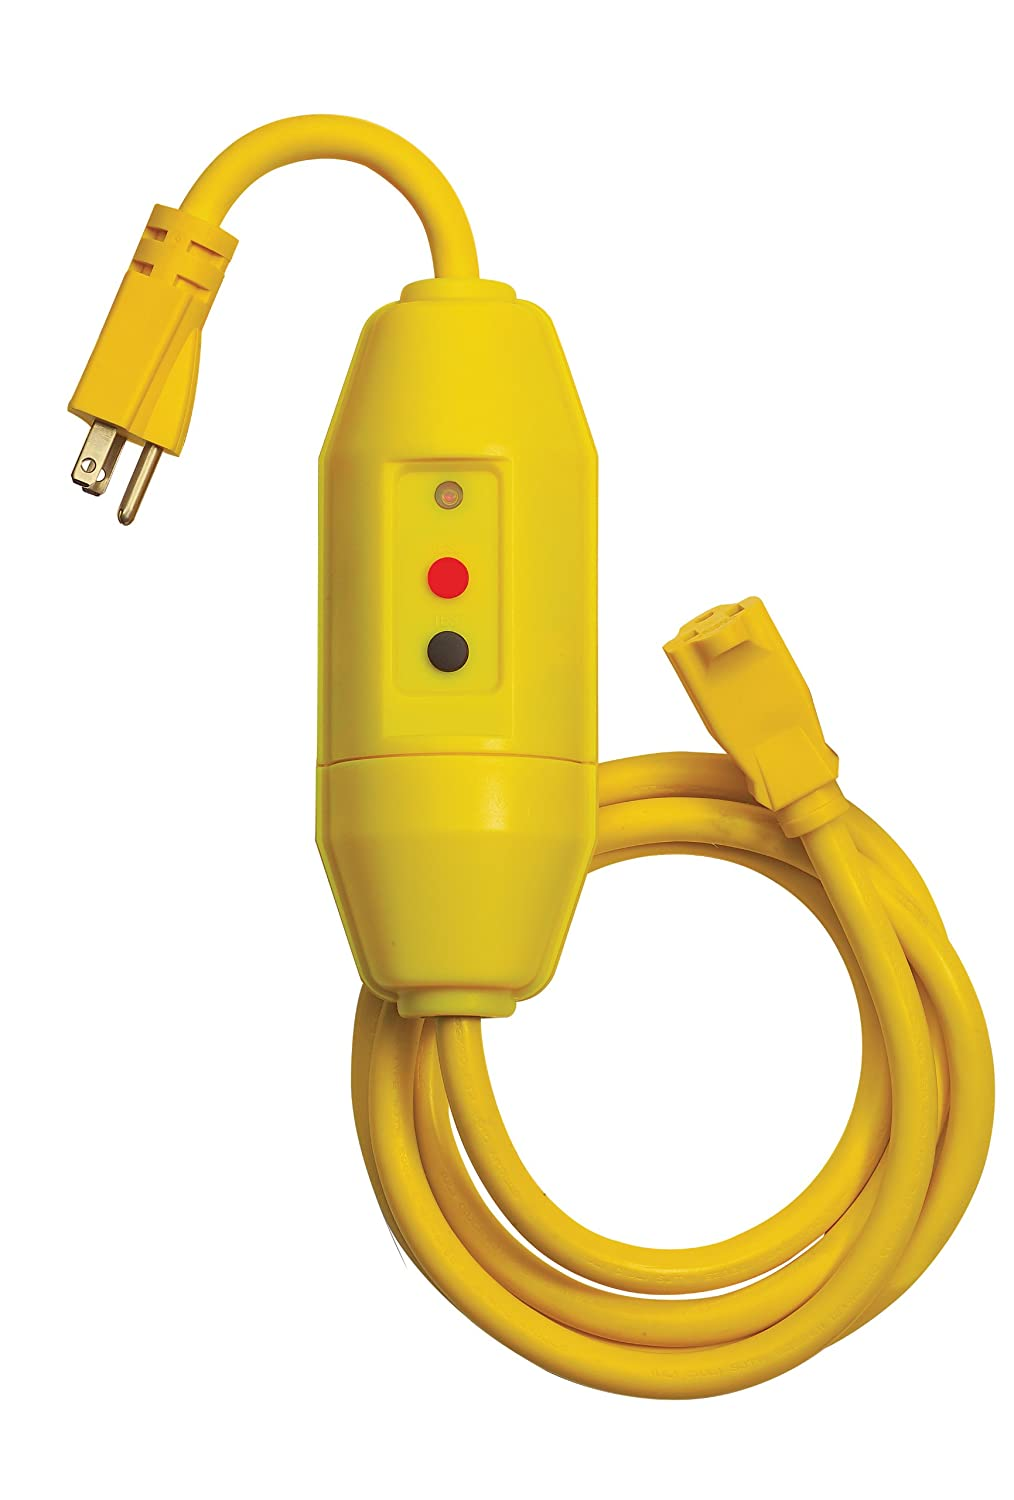 Yellow Tower Manufacturing 30438018 Heavy Duty Commercial Grade 15 AMP Auto-Reset Inline GFCI Cord Set with Single Connector,/ 18 Cord